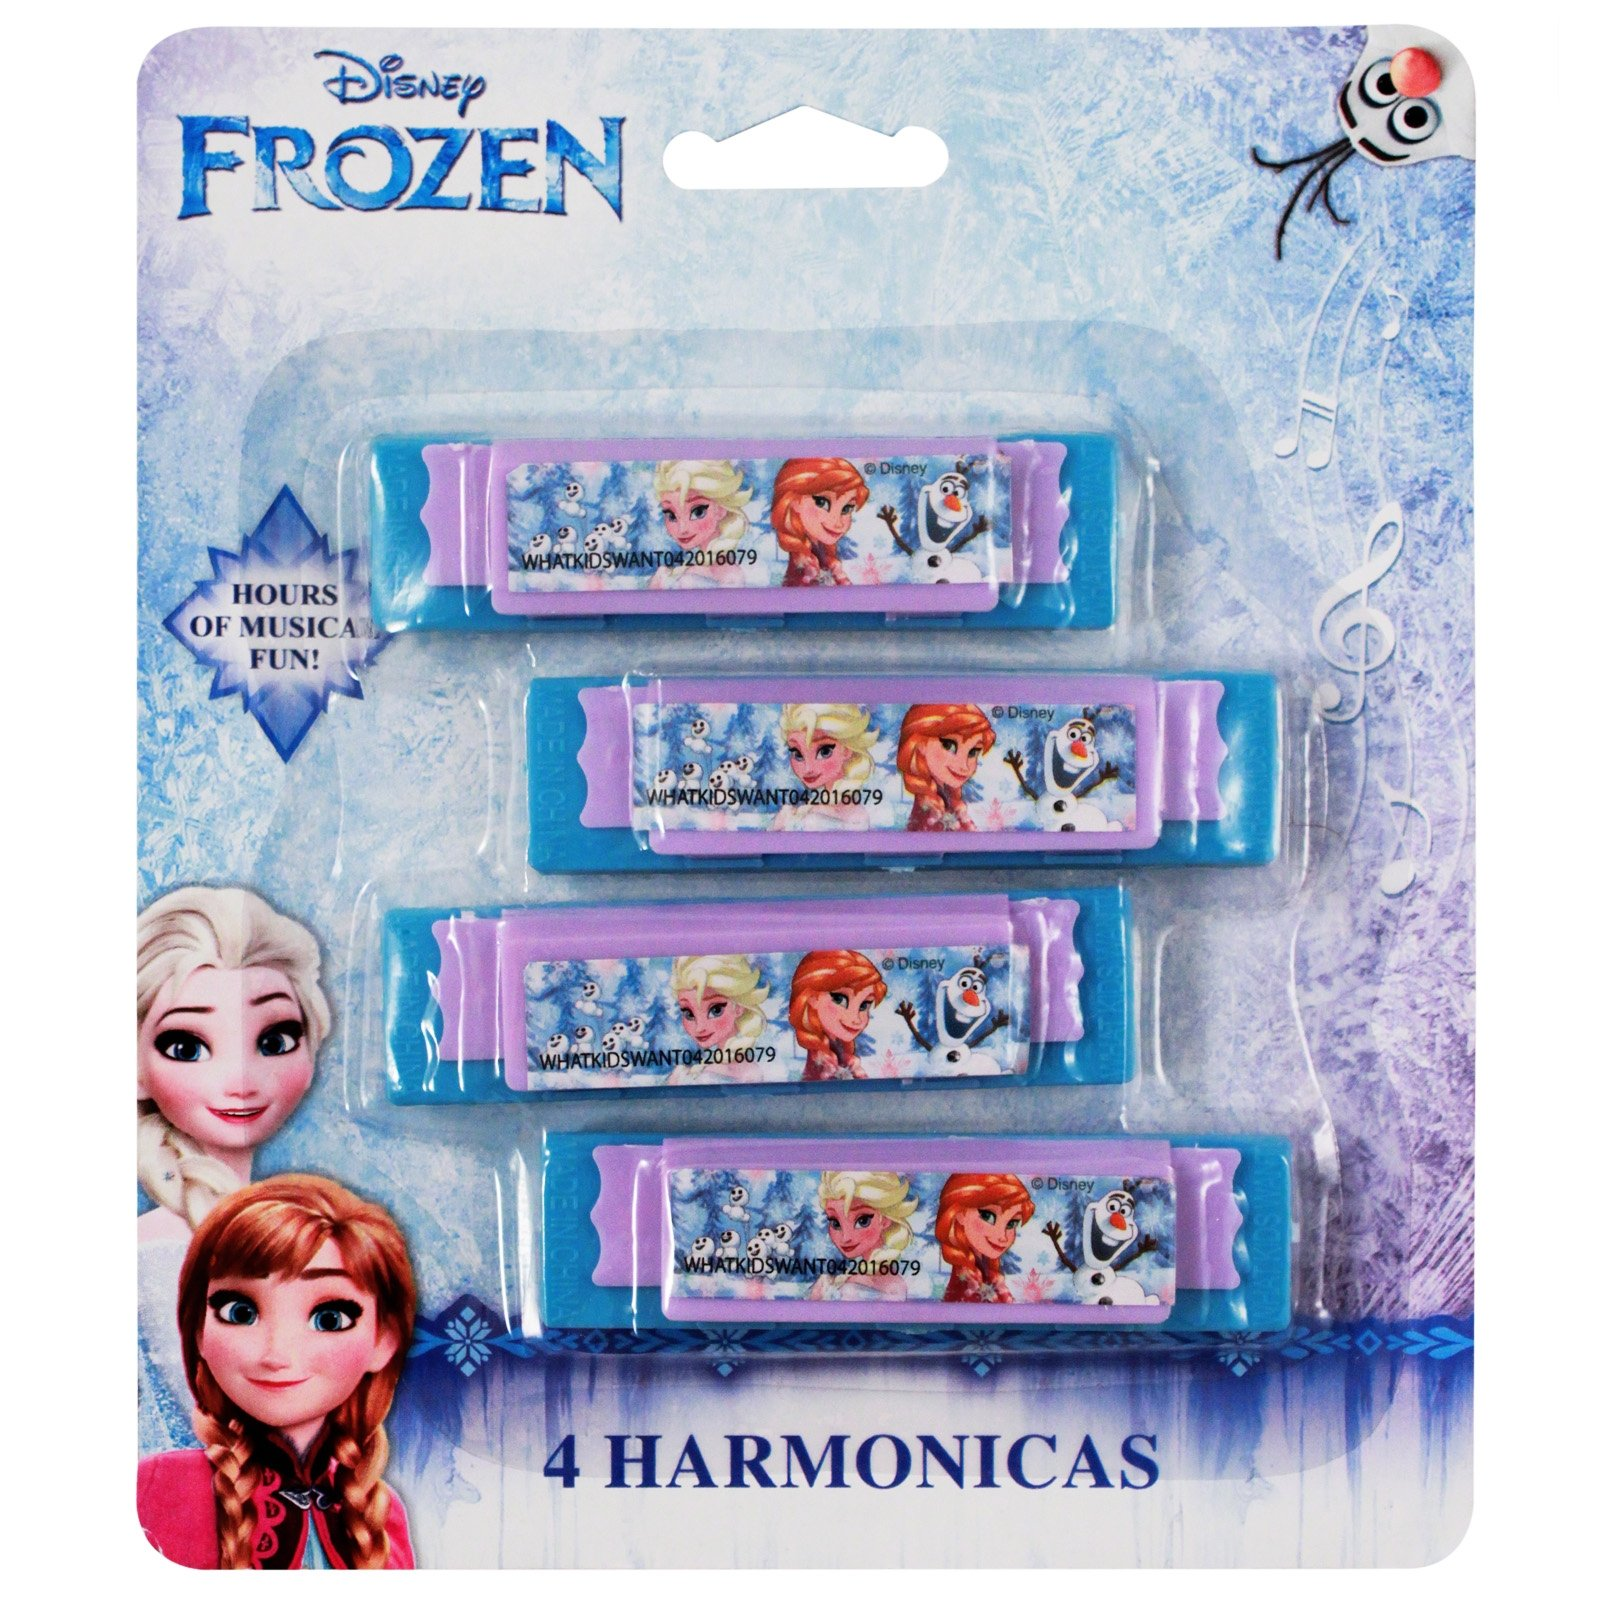 Disney Frozen Princess Elsa and Anna Mini Harmonica Music Instrument Toy 4pk